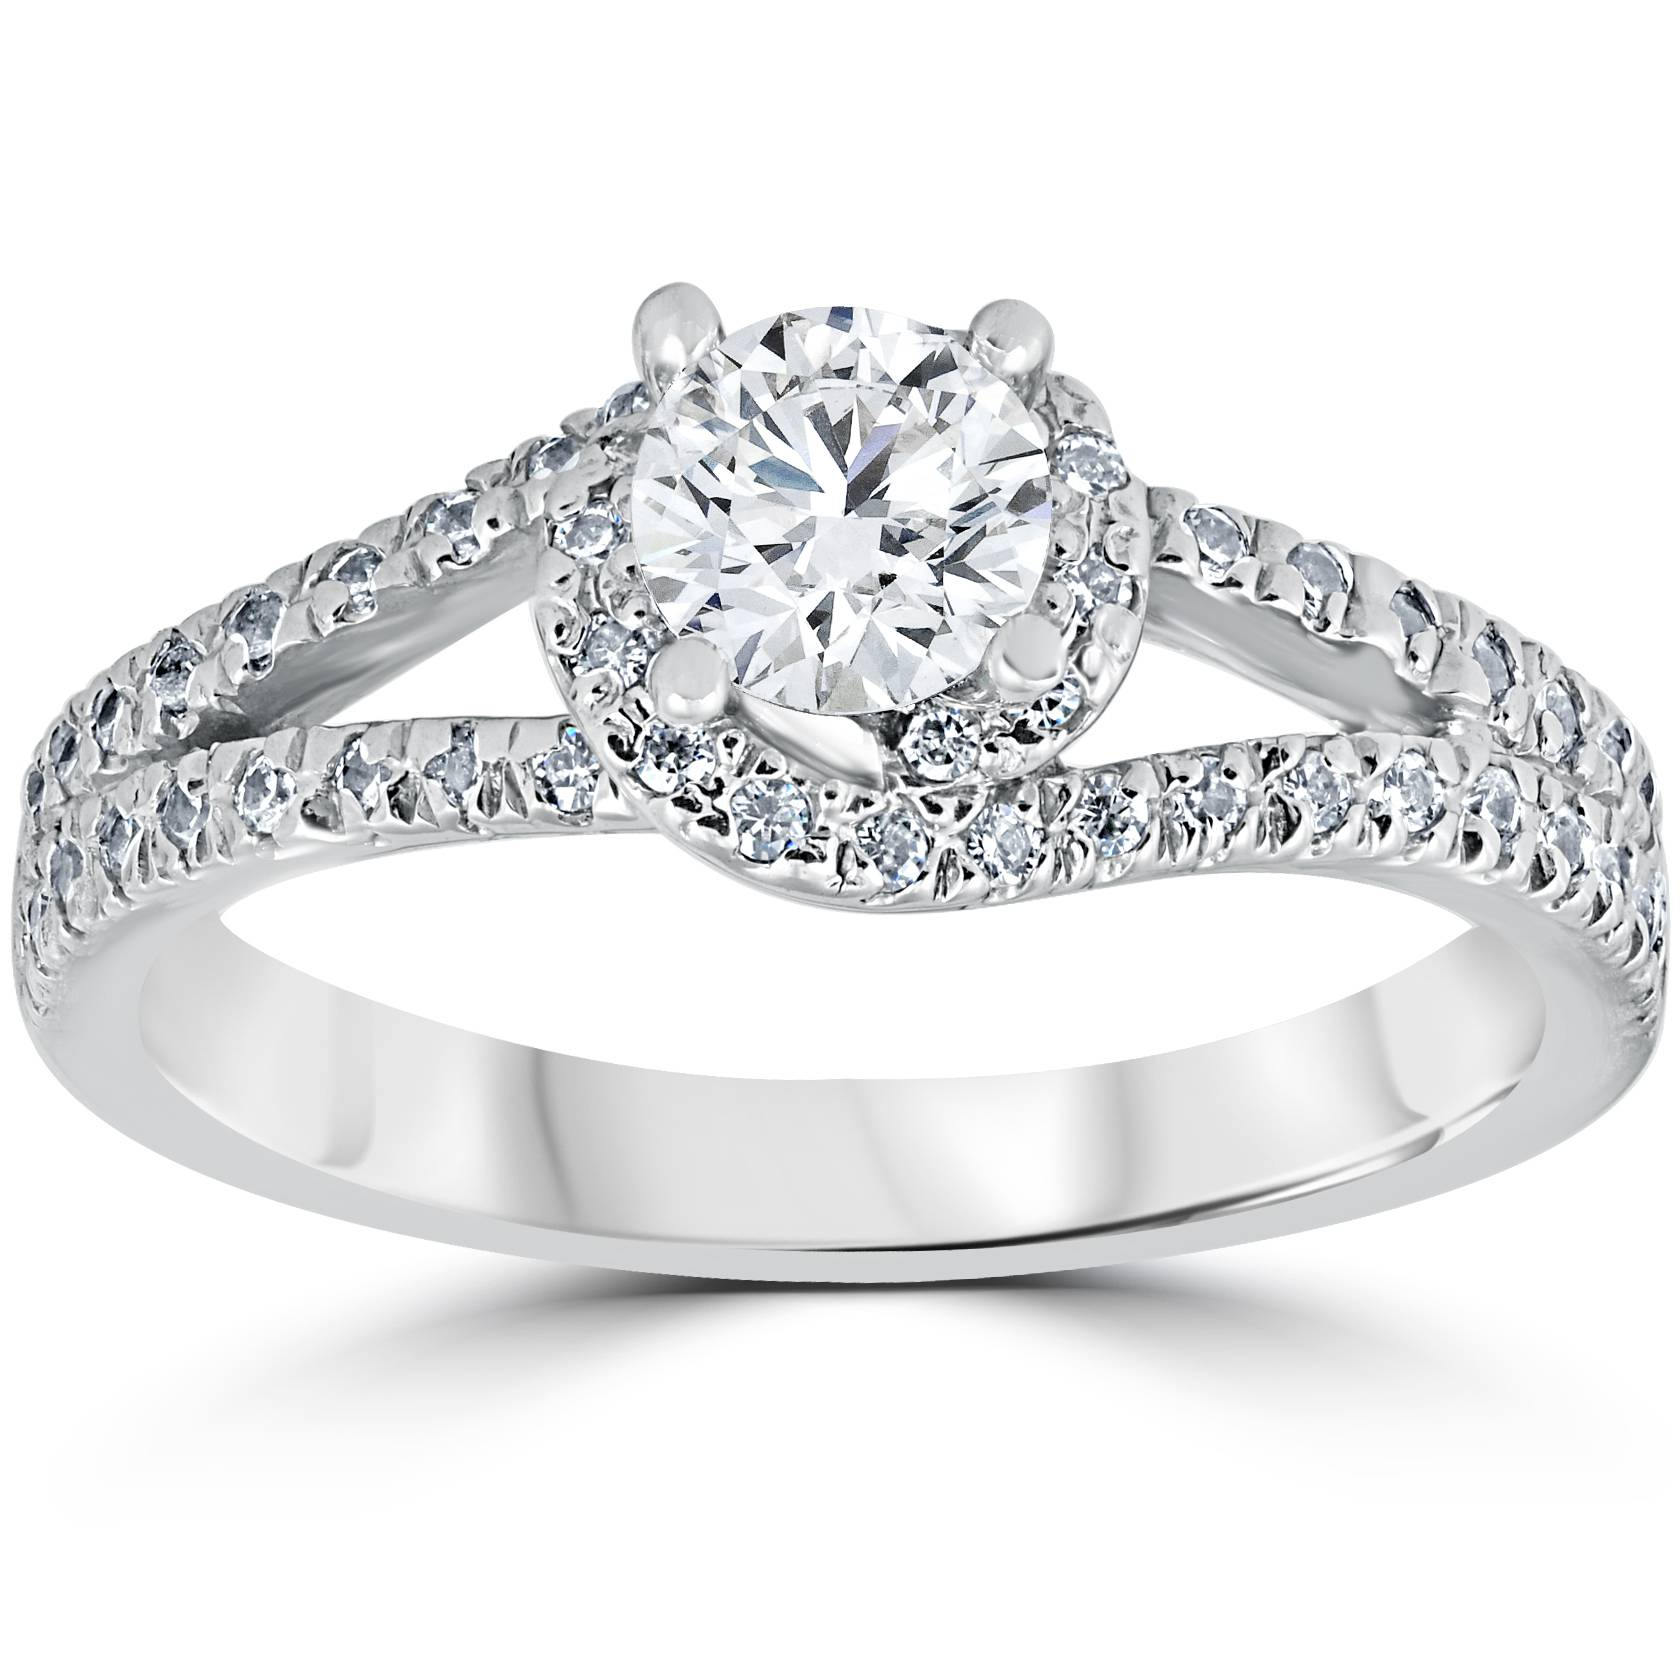 1 16ct Twist Round Cut Solitaire Diamond Engagement Ring